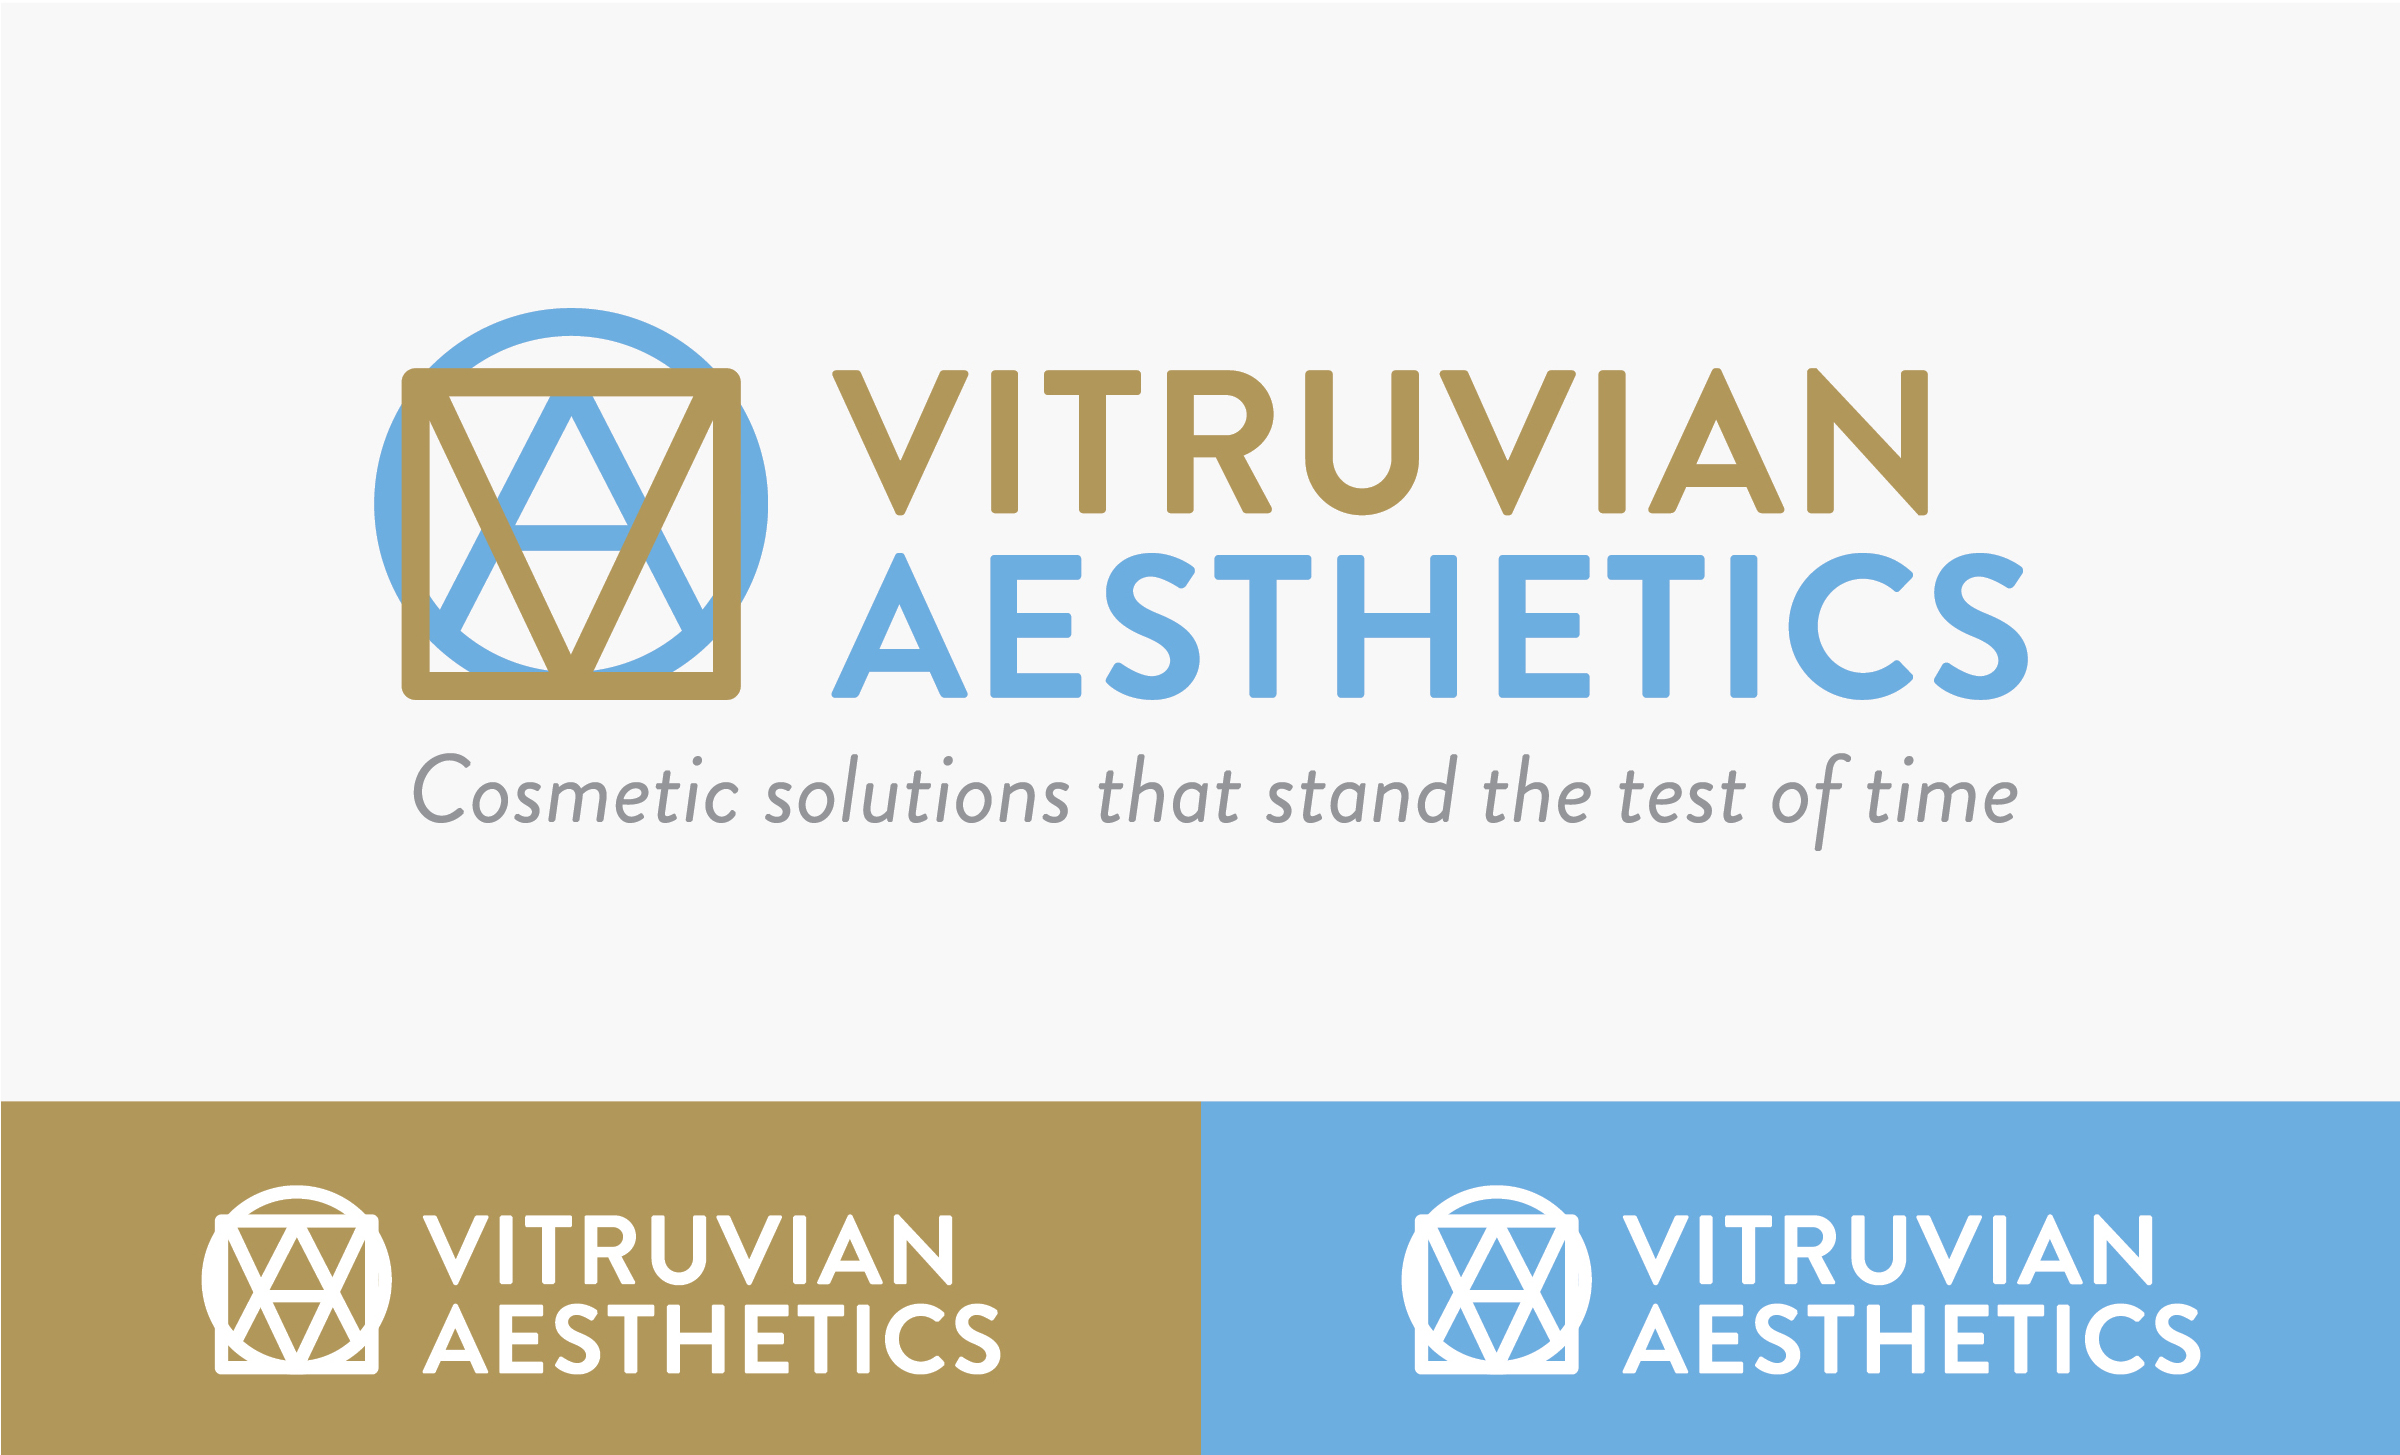 AnthonyElder_Website_VitruvianAesthetics_7.jpg